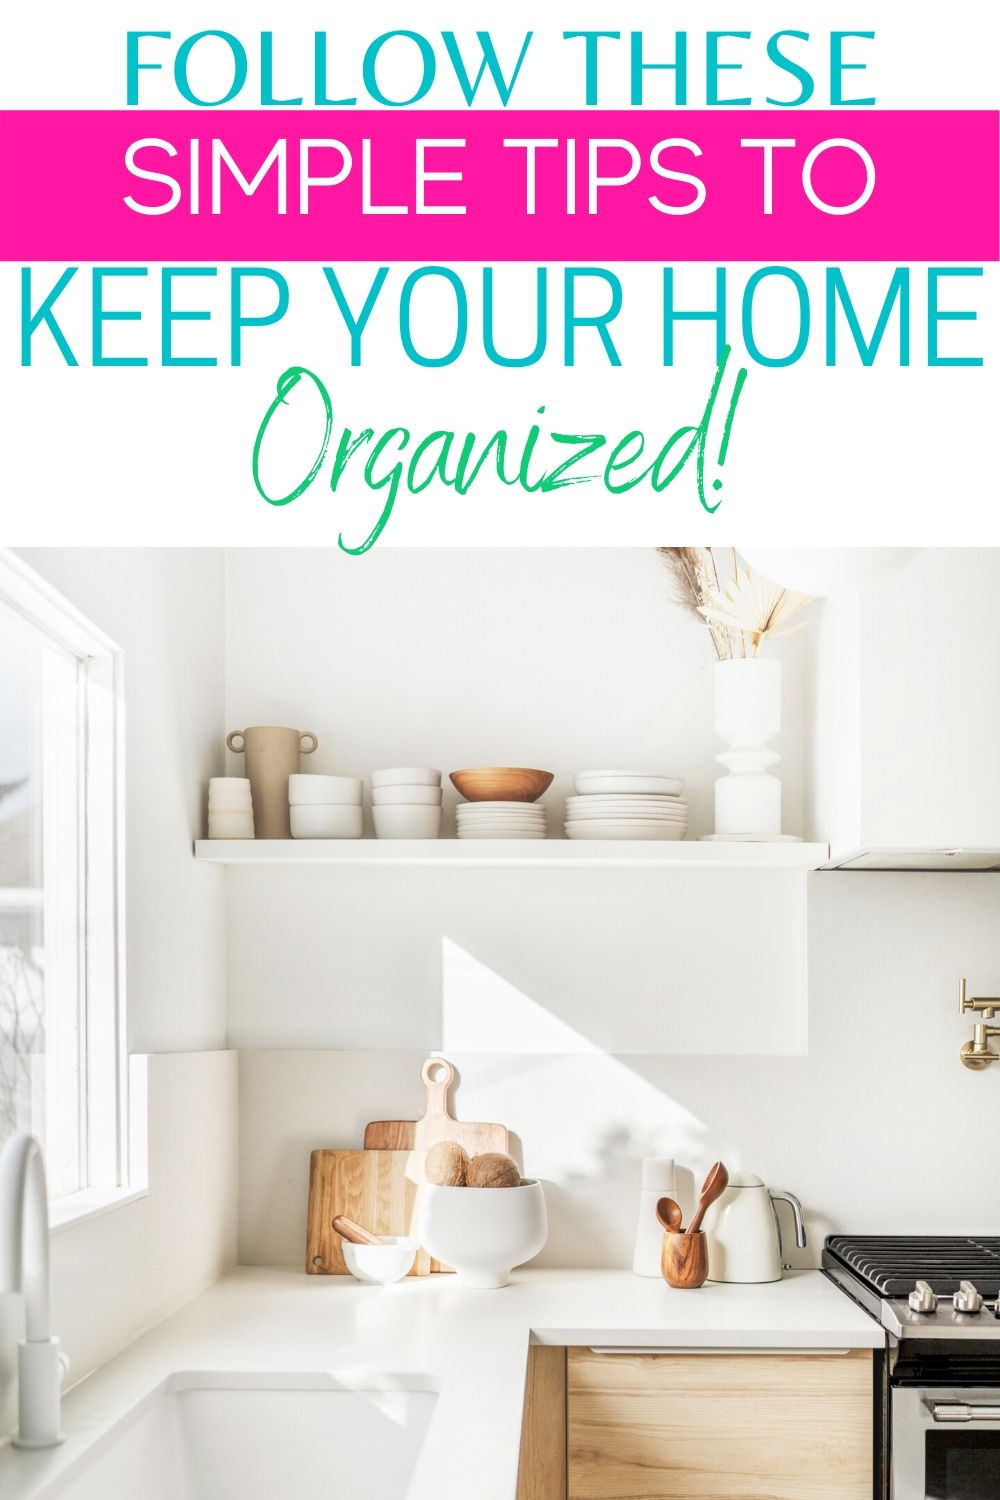 Keep your entire home organized by following these simple organizing tips. These home organizing hacks will keep your home clean and organized. #organizedhome #organizedtips #organizinghacks #organizingtipsandtricks via @homebyjenn